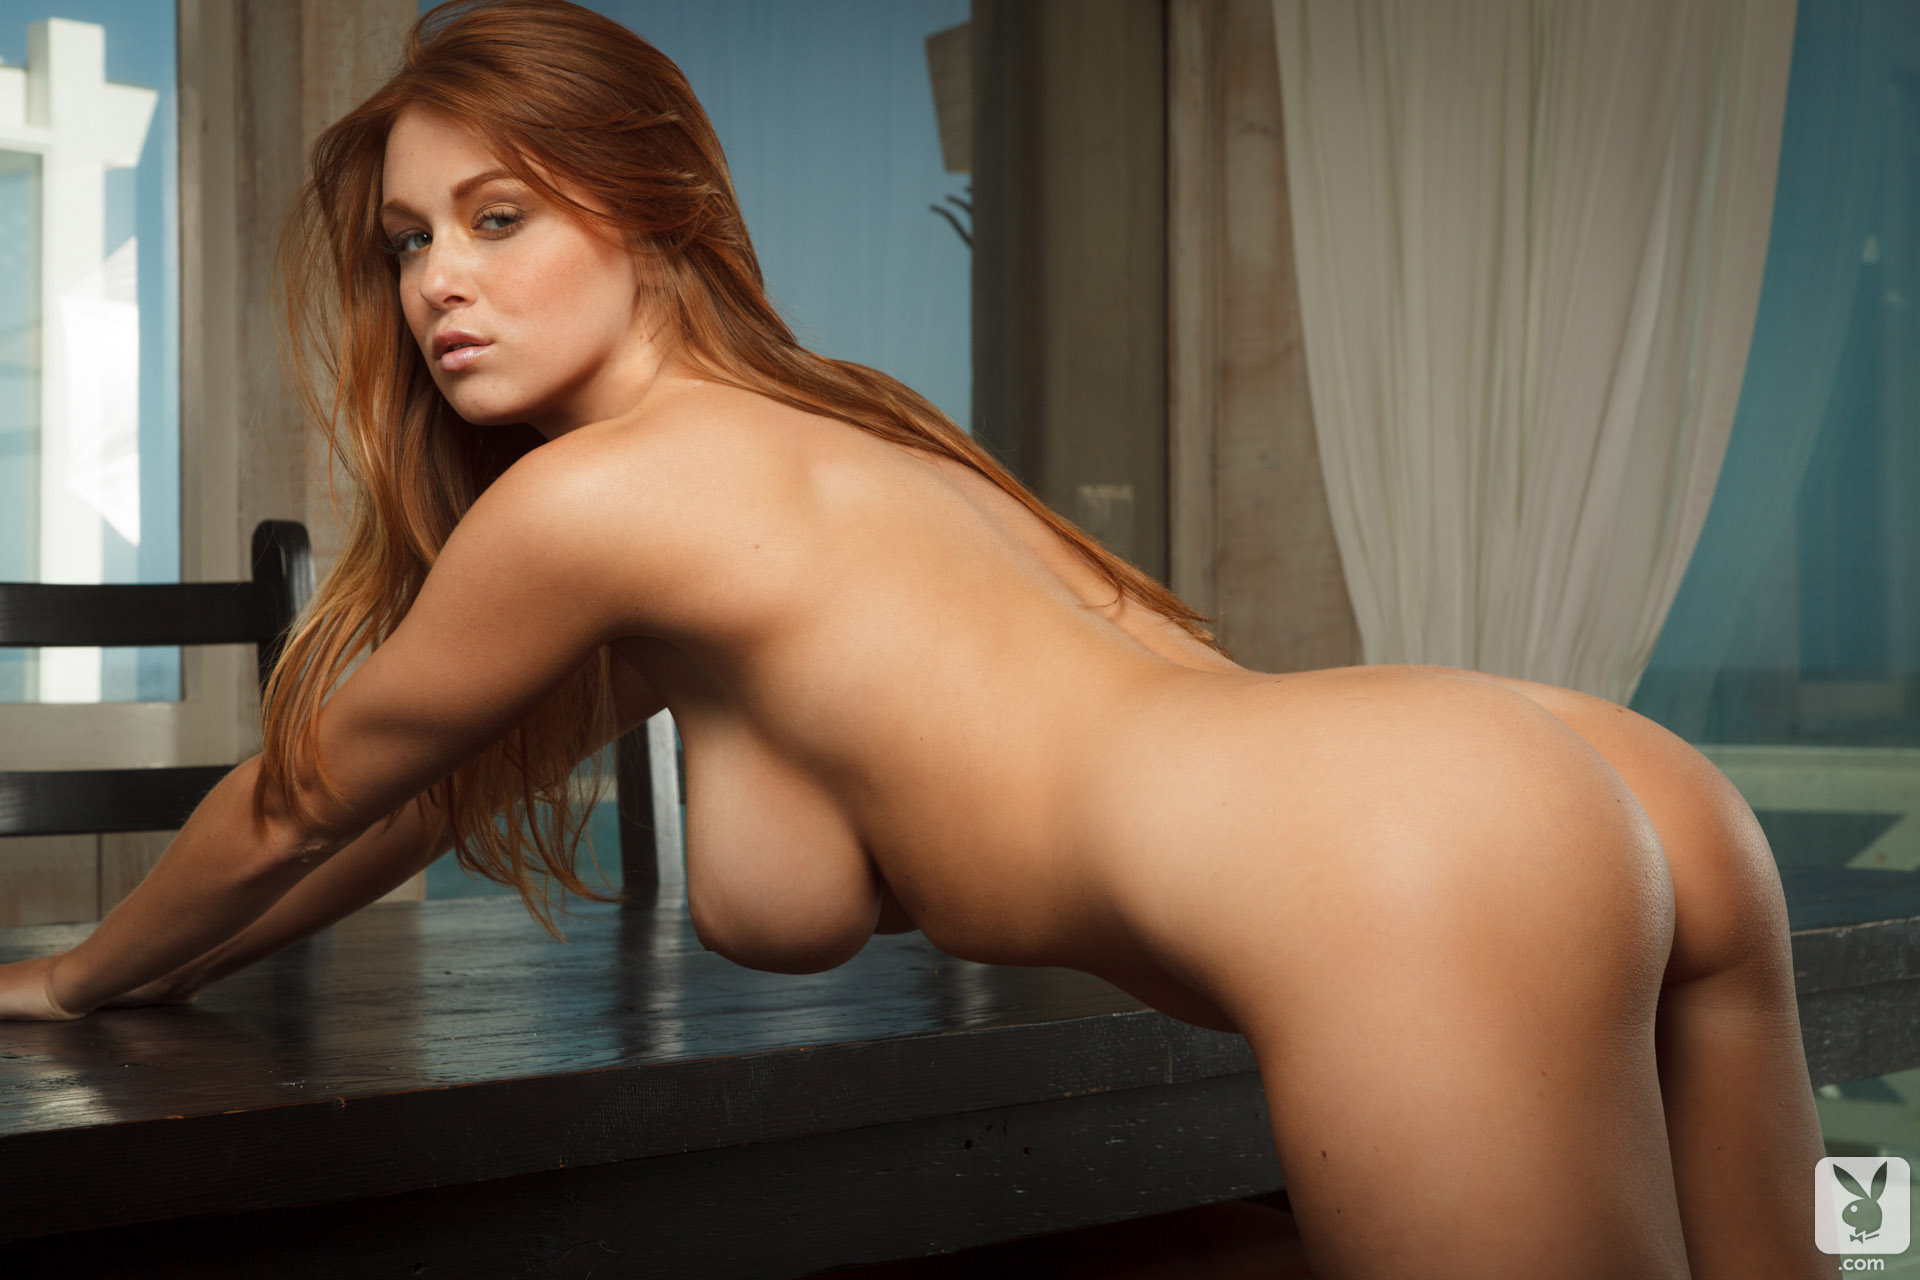 leanna-decker-topless-playboy-nude-3 - motherless